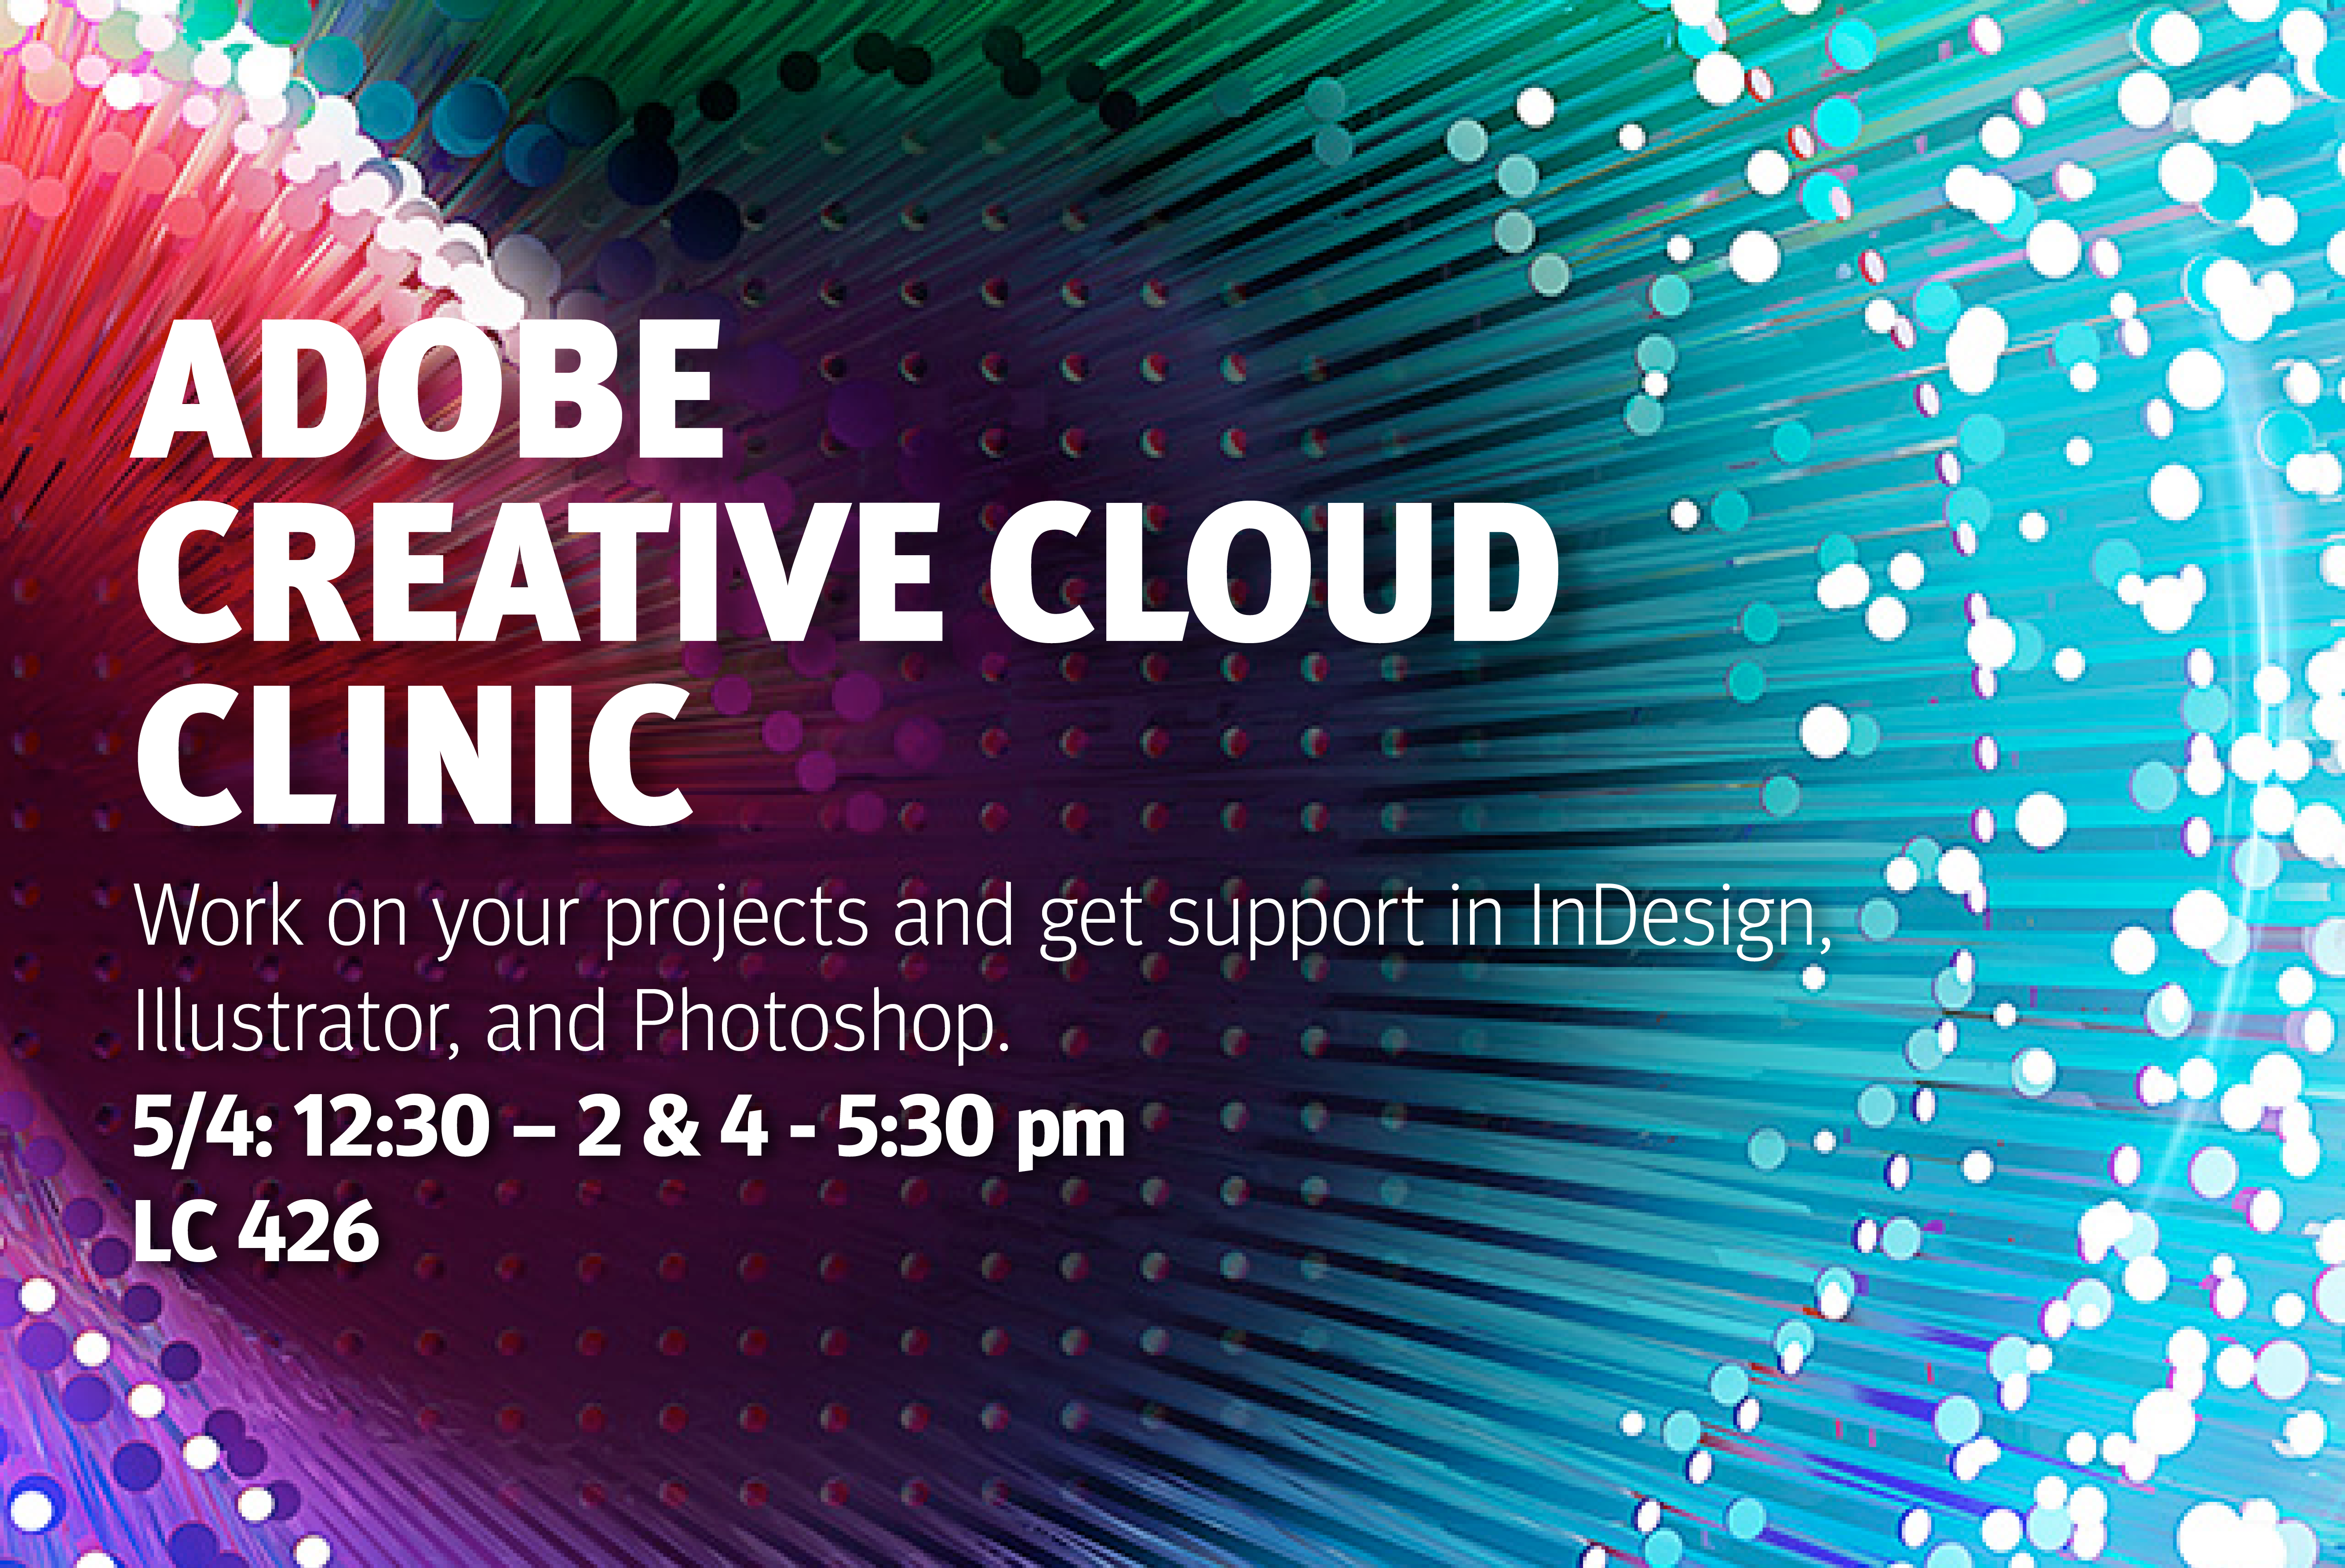 Adobe Creative Cloud Clinic